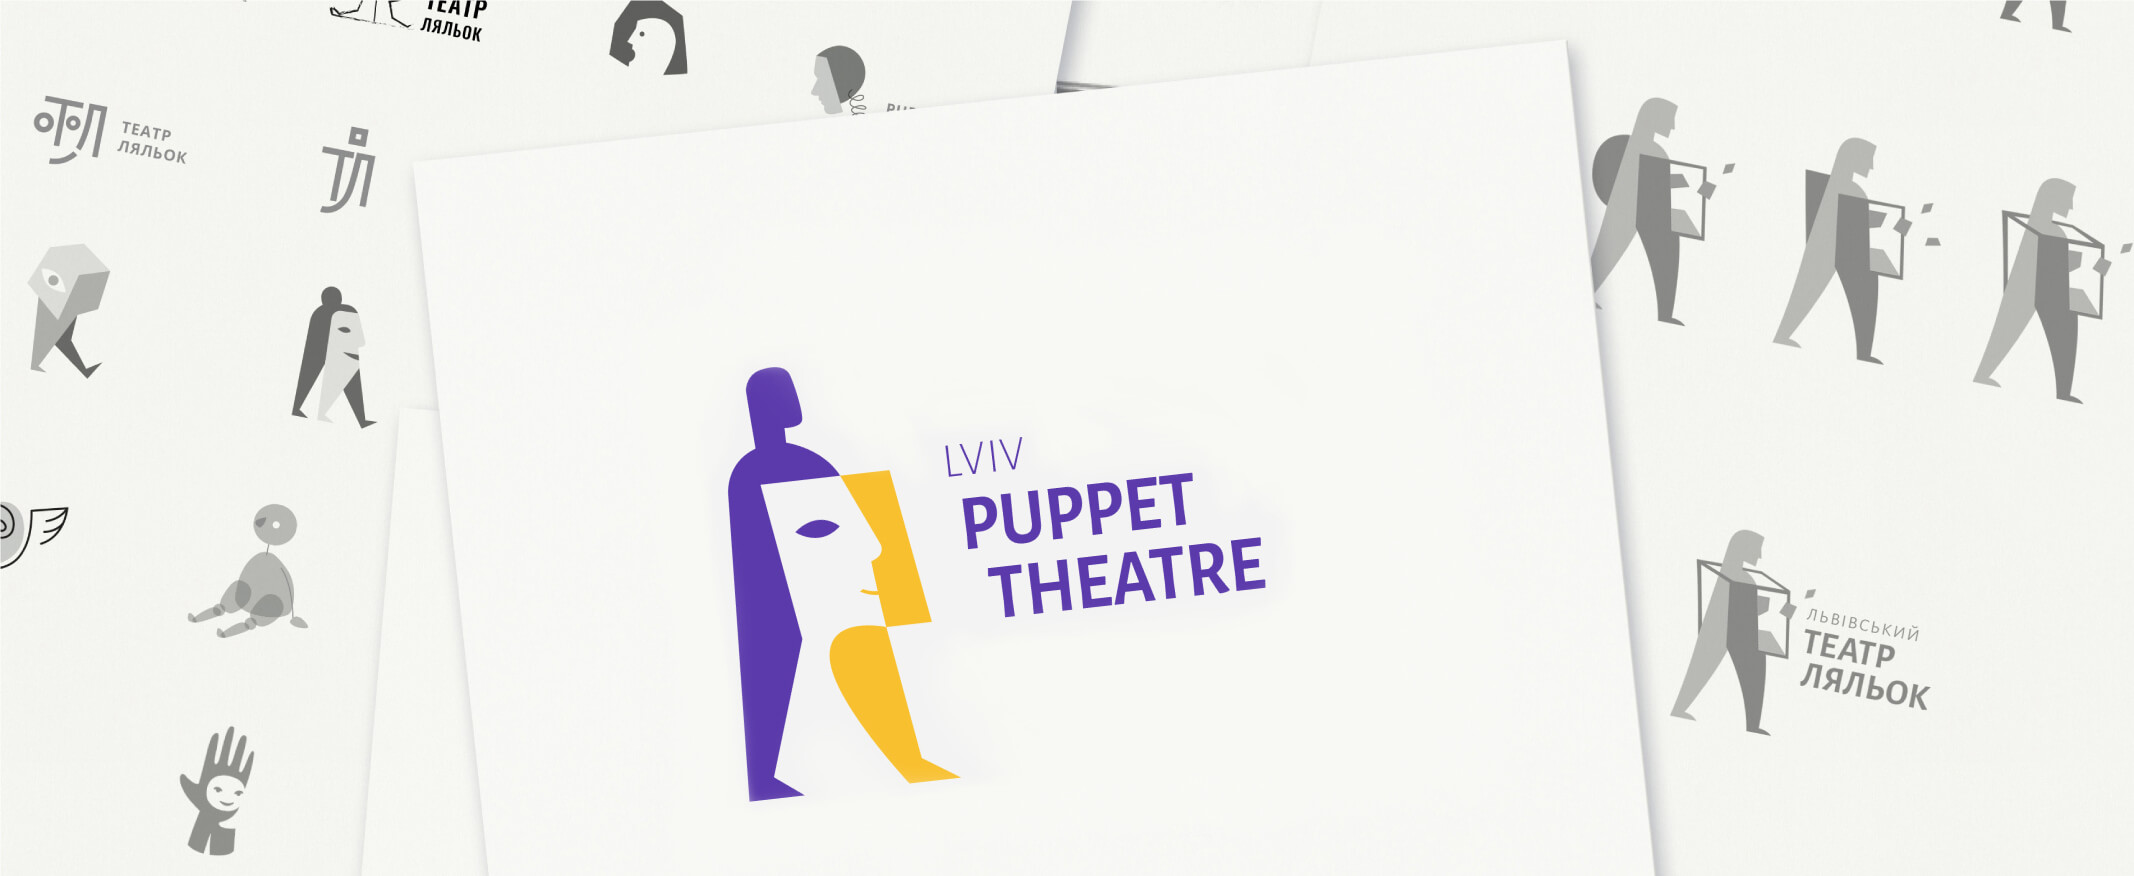 Perfectial's Design Agency Pixetic Presented a New Brand Style for Local Puppet Theatre